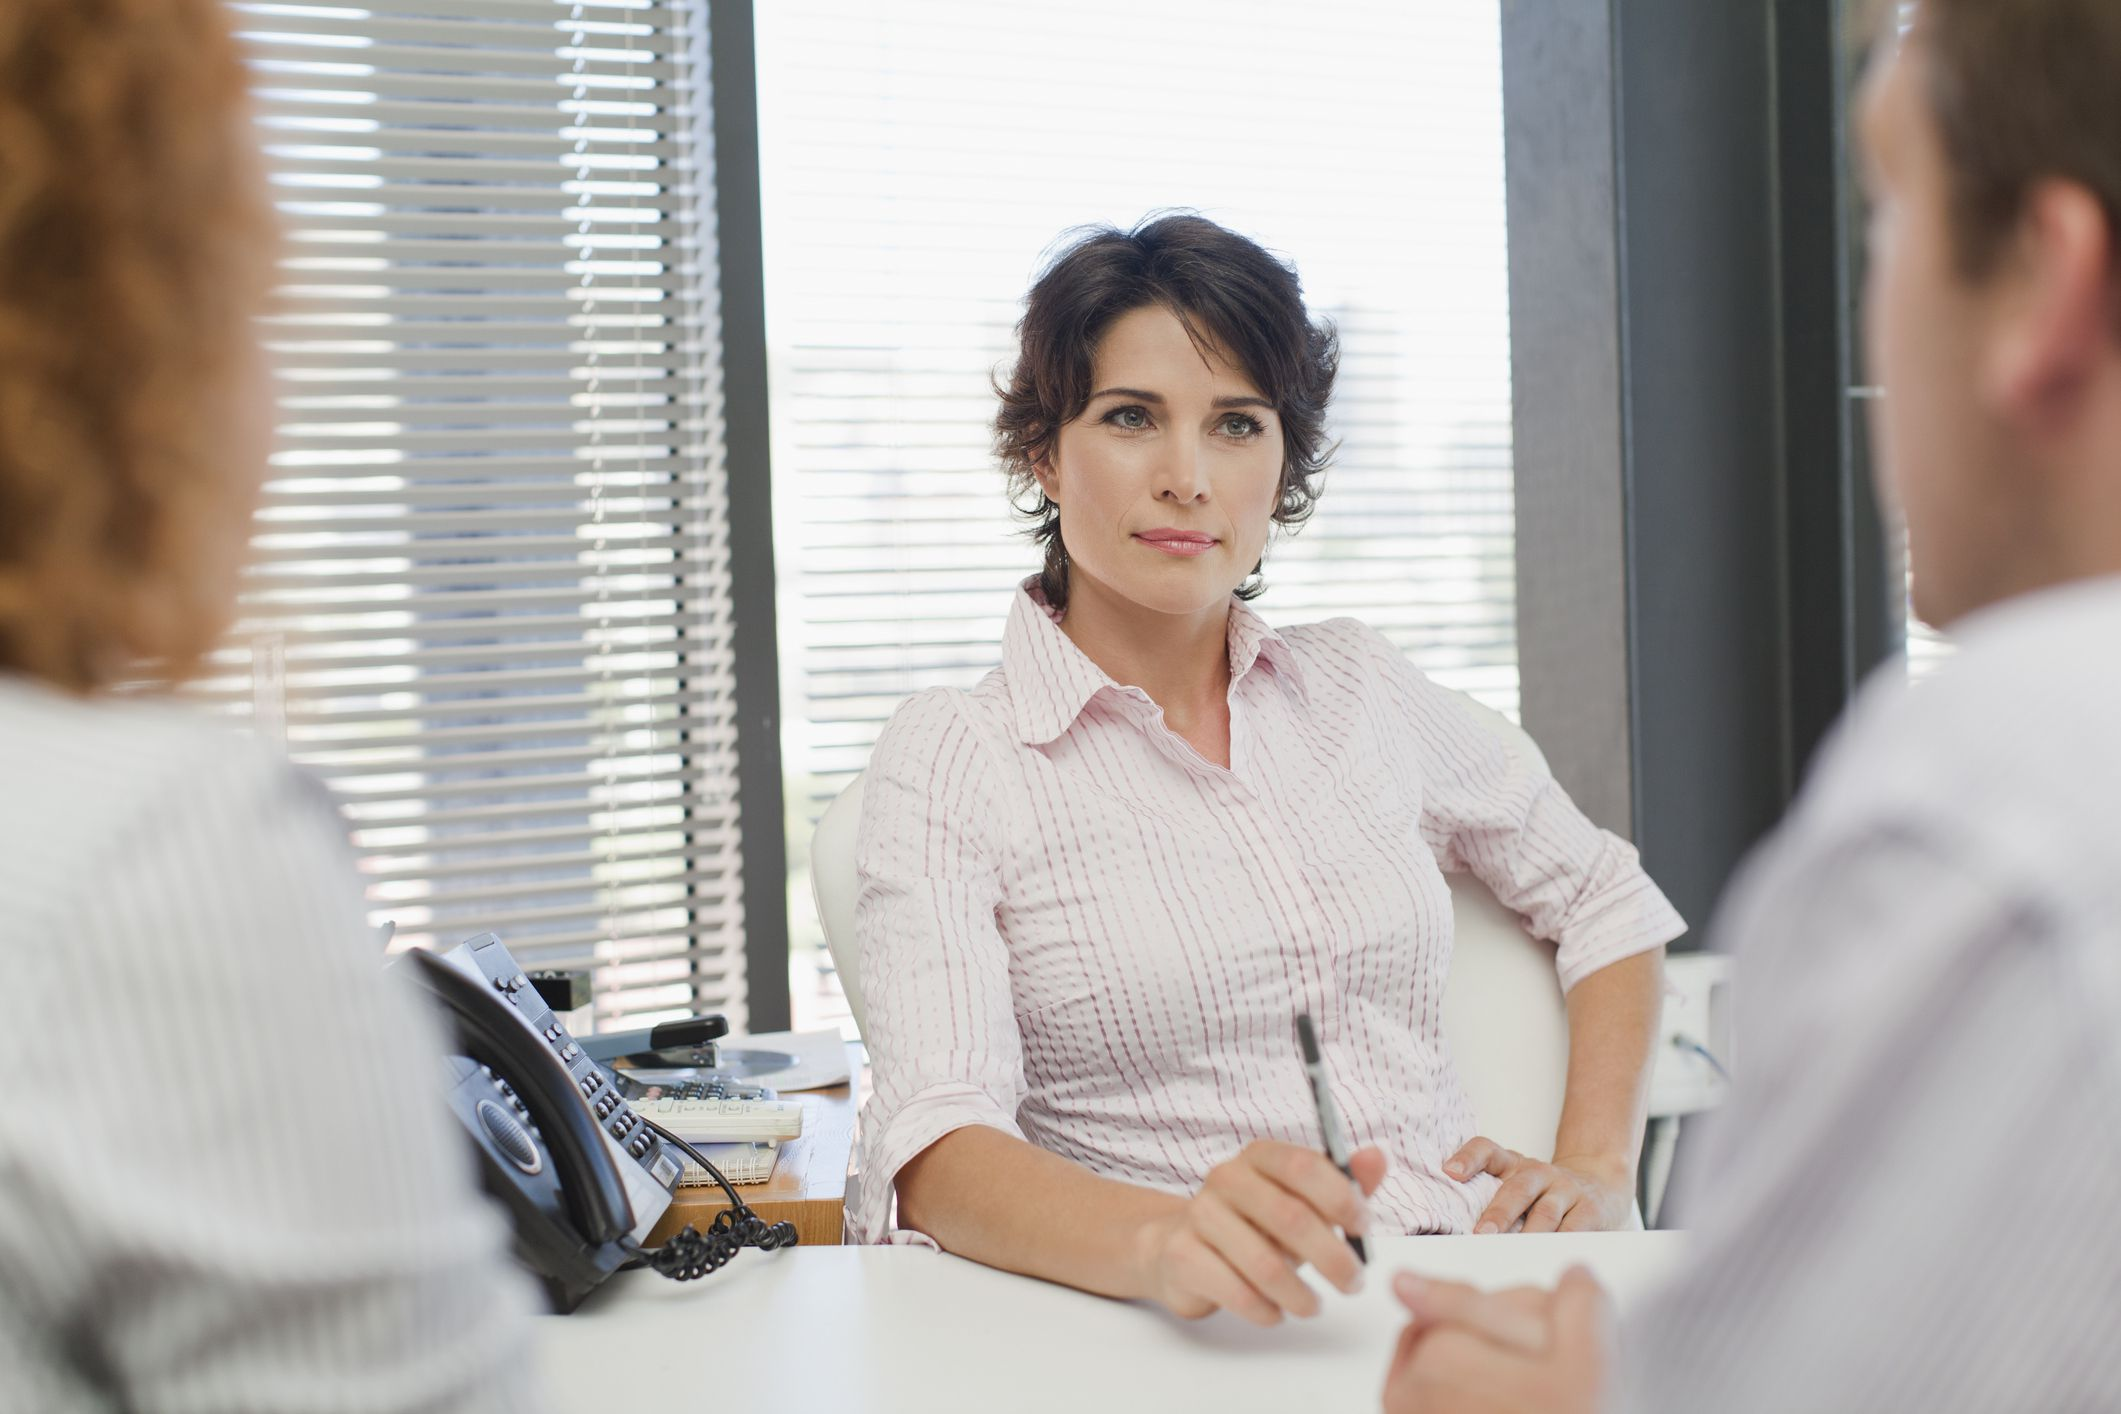 Body Language Hacks To Help Women Get Ahead At Work